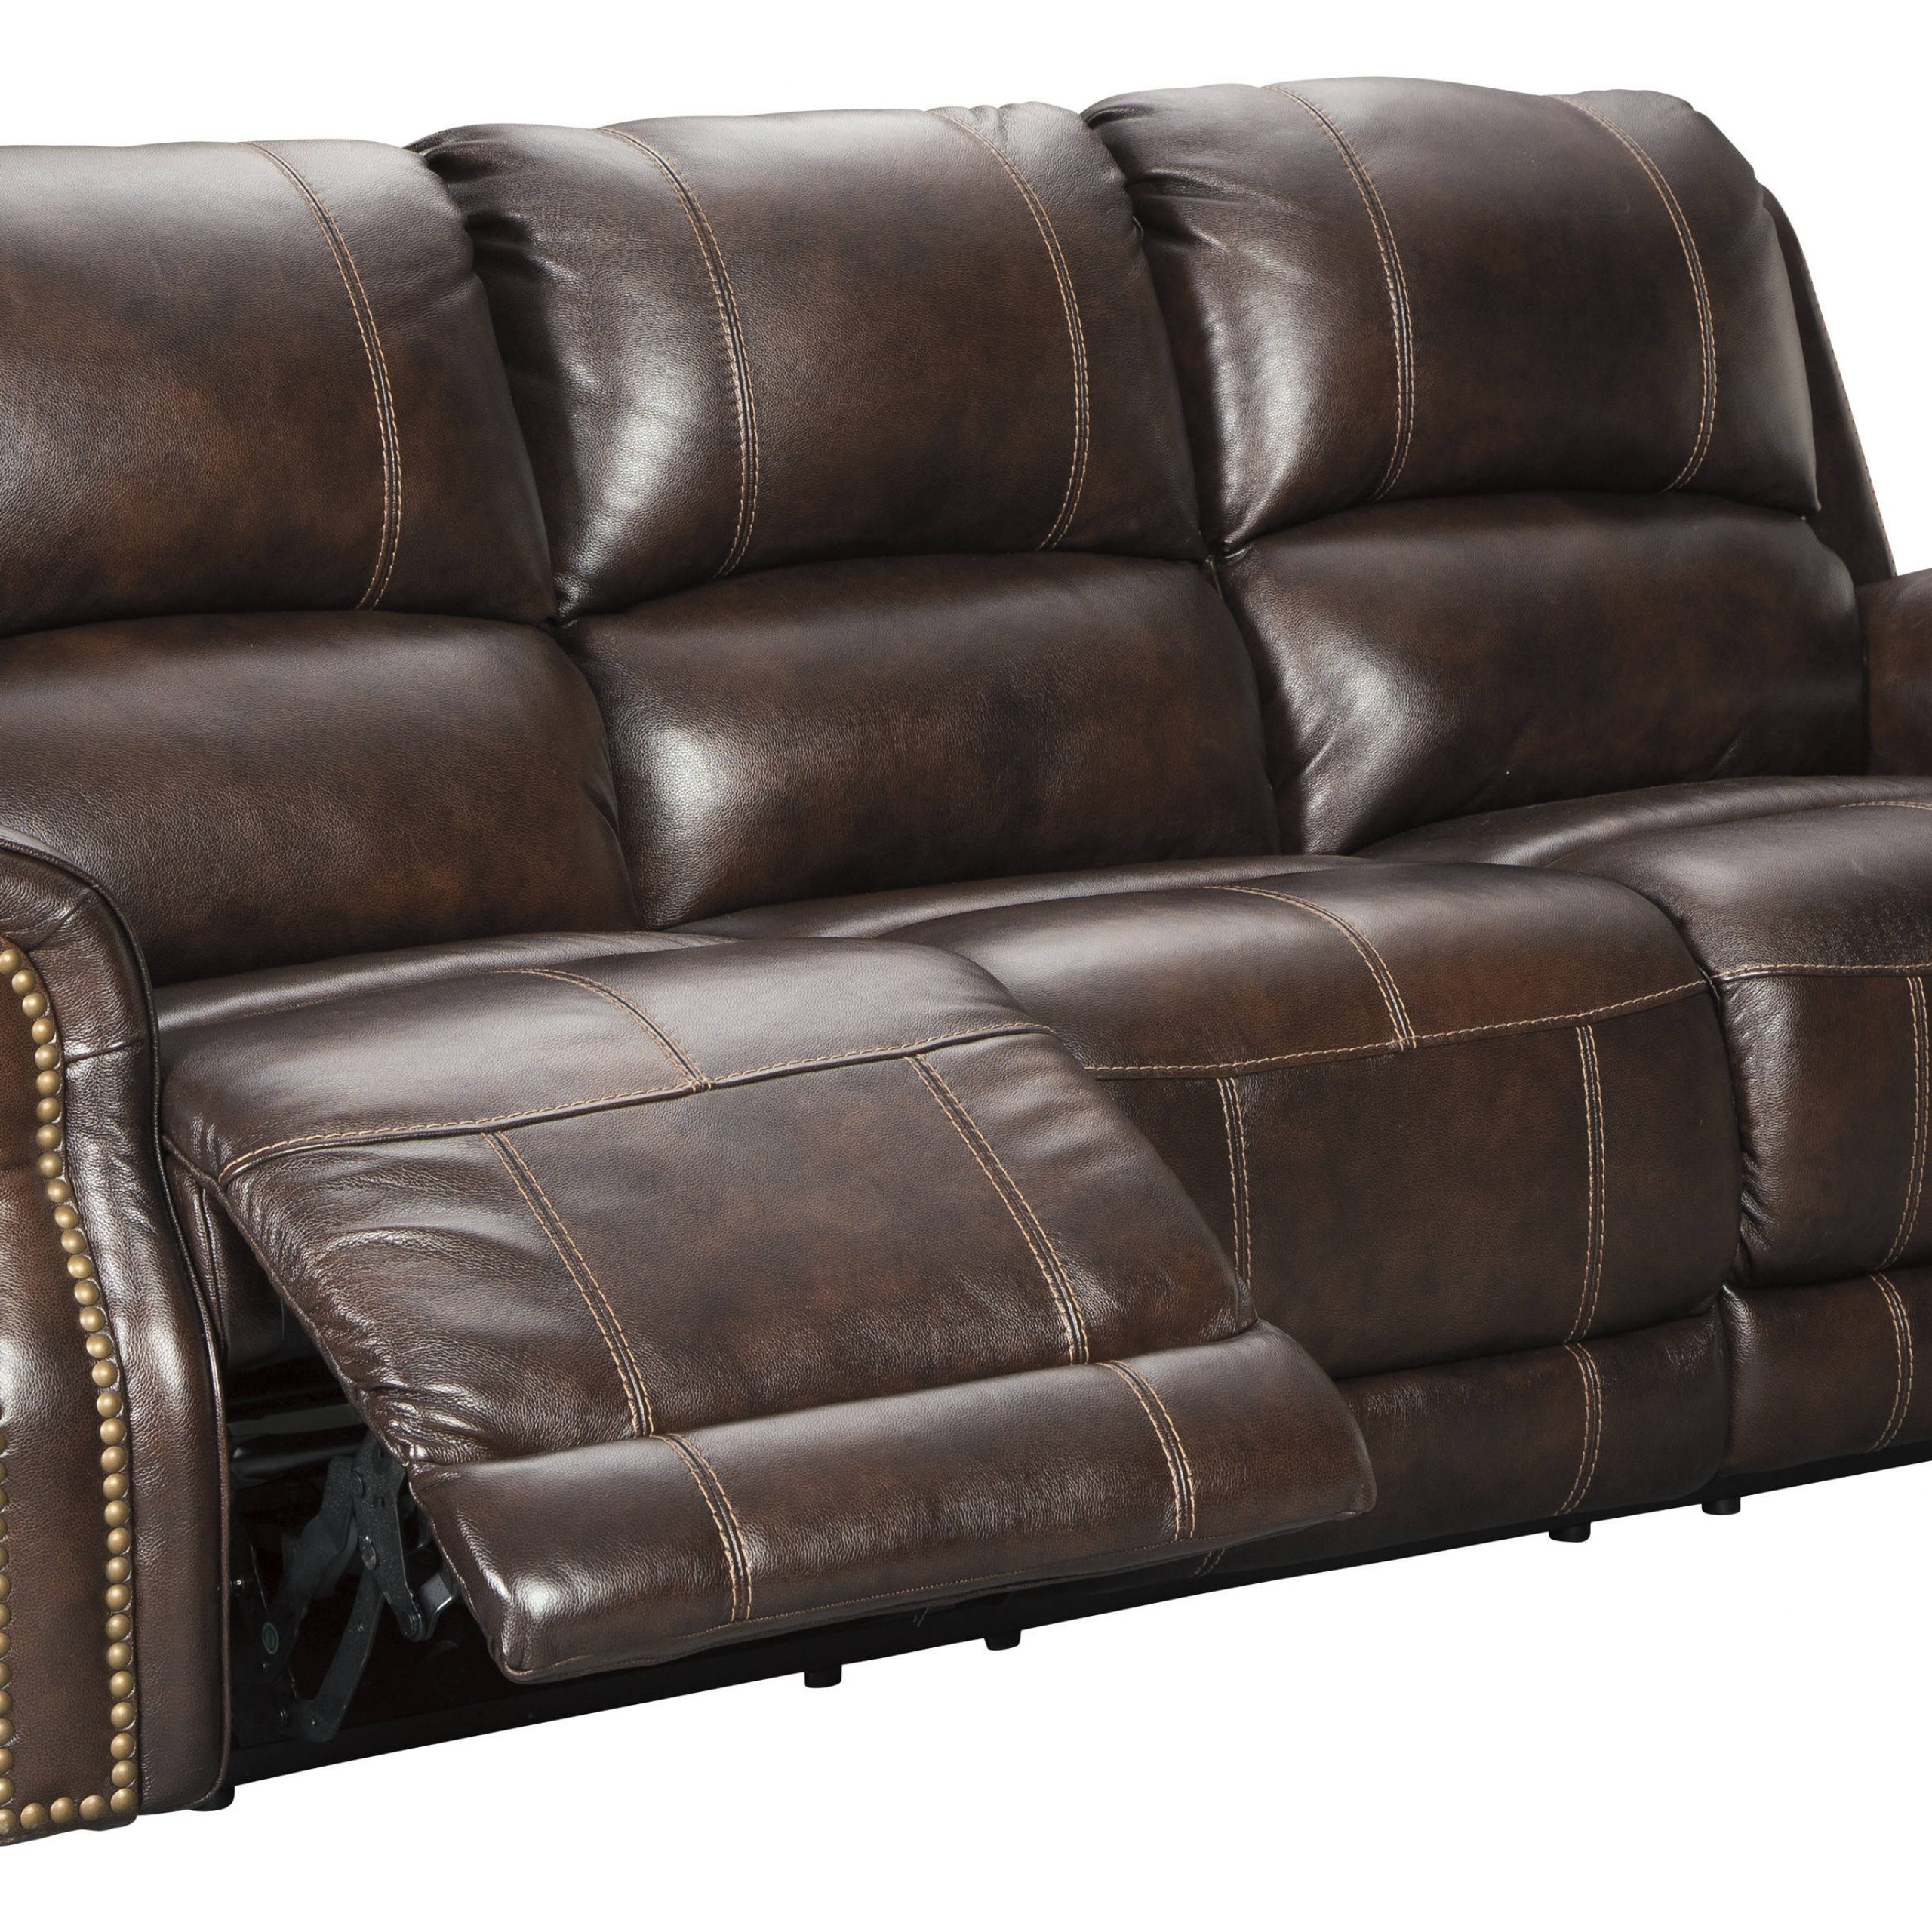 Ashley Furniture Buncrana Power Reclining Sofa With For Raven Power Reclining Sofas (View 7 of 15)